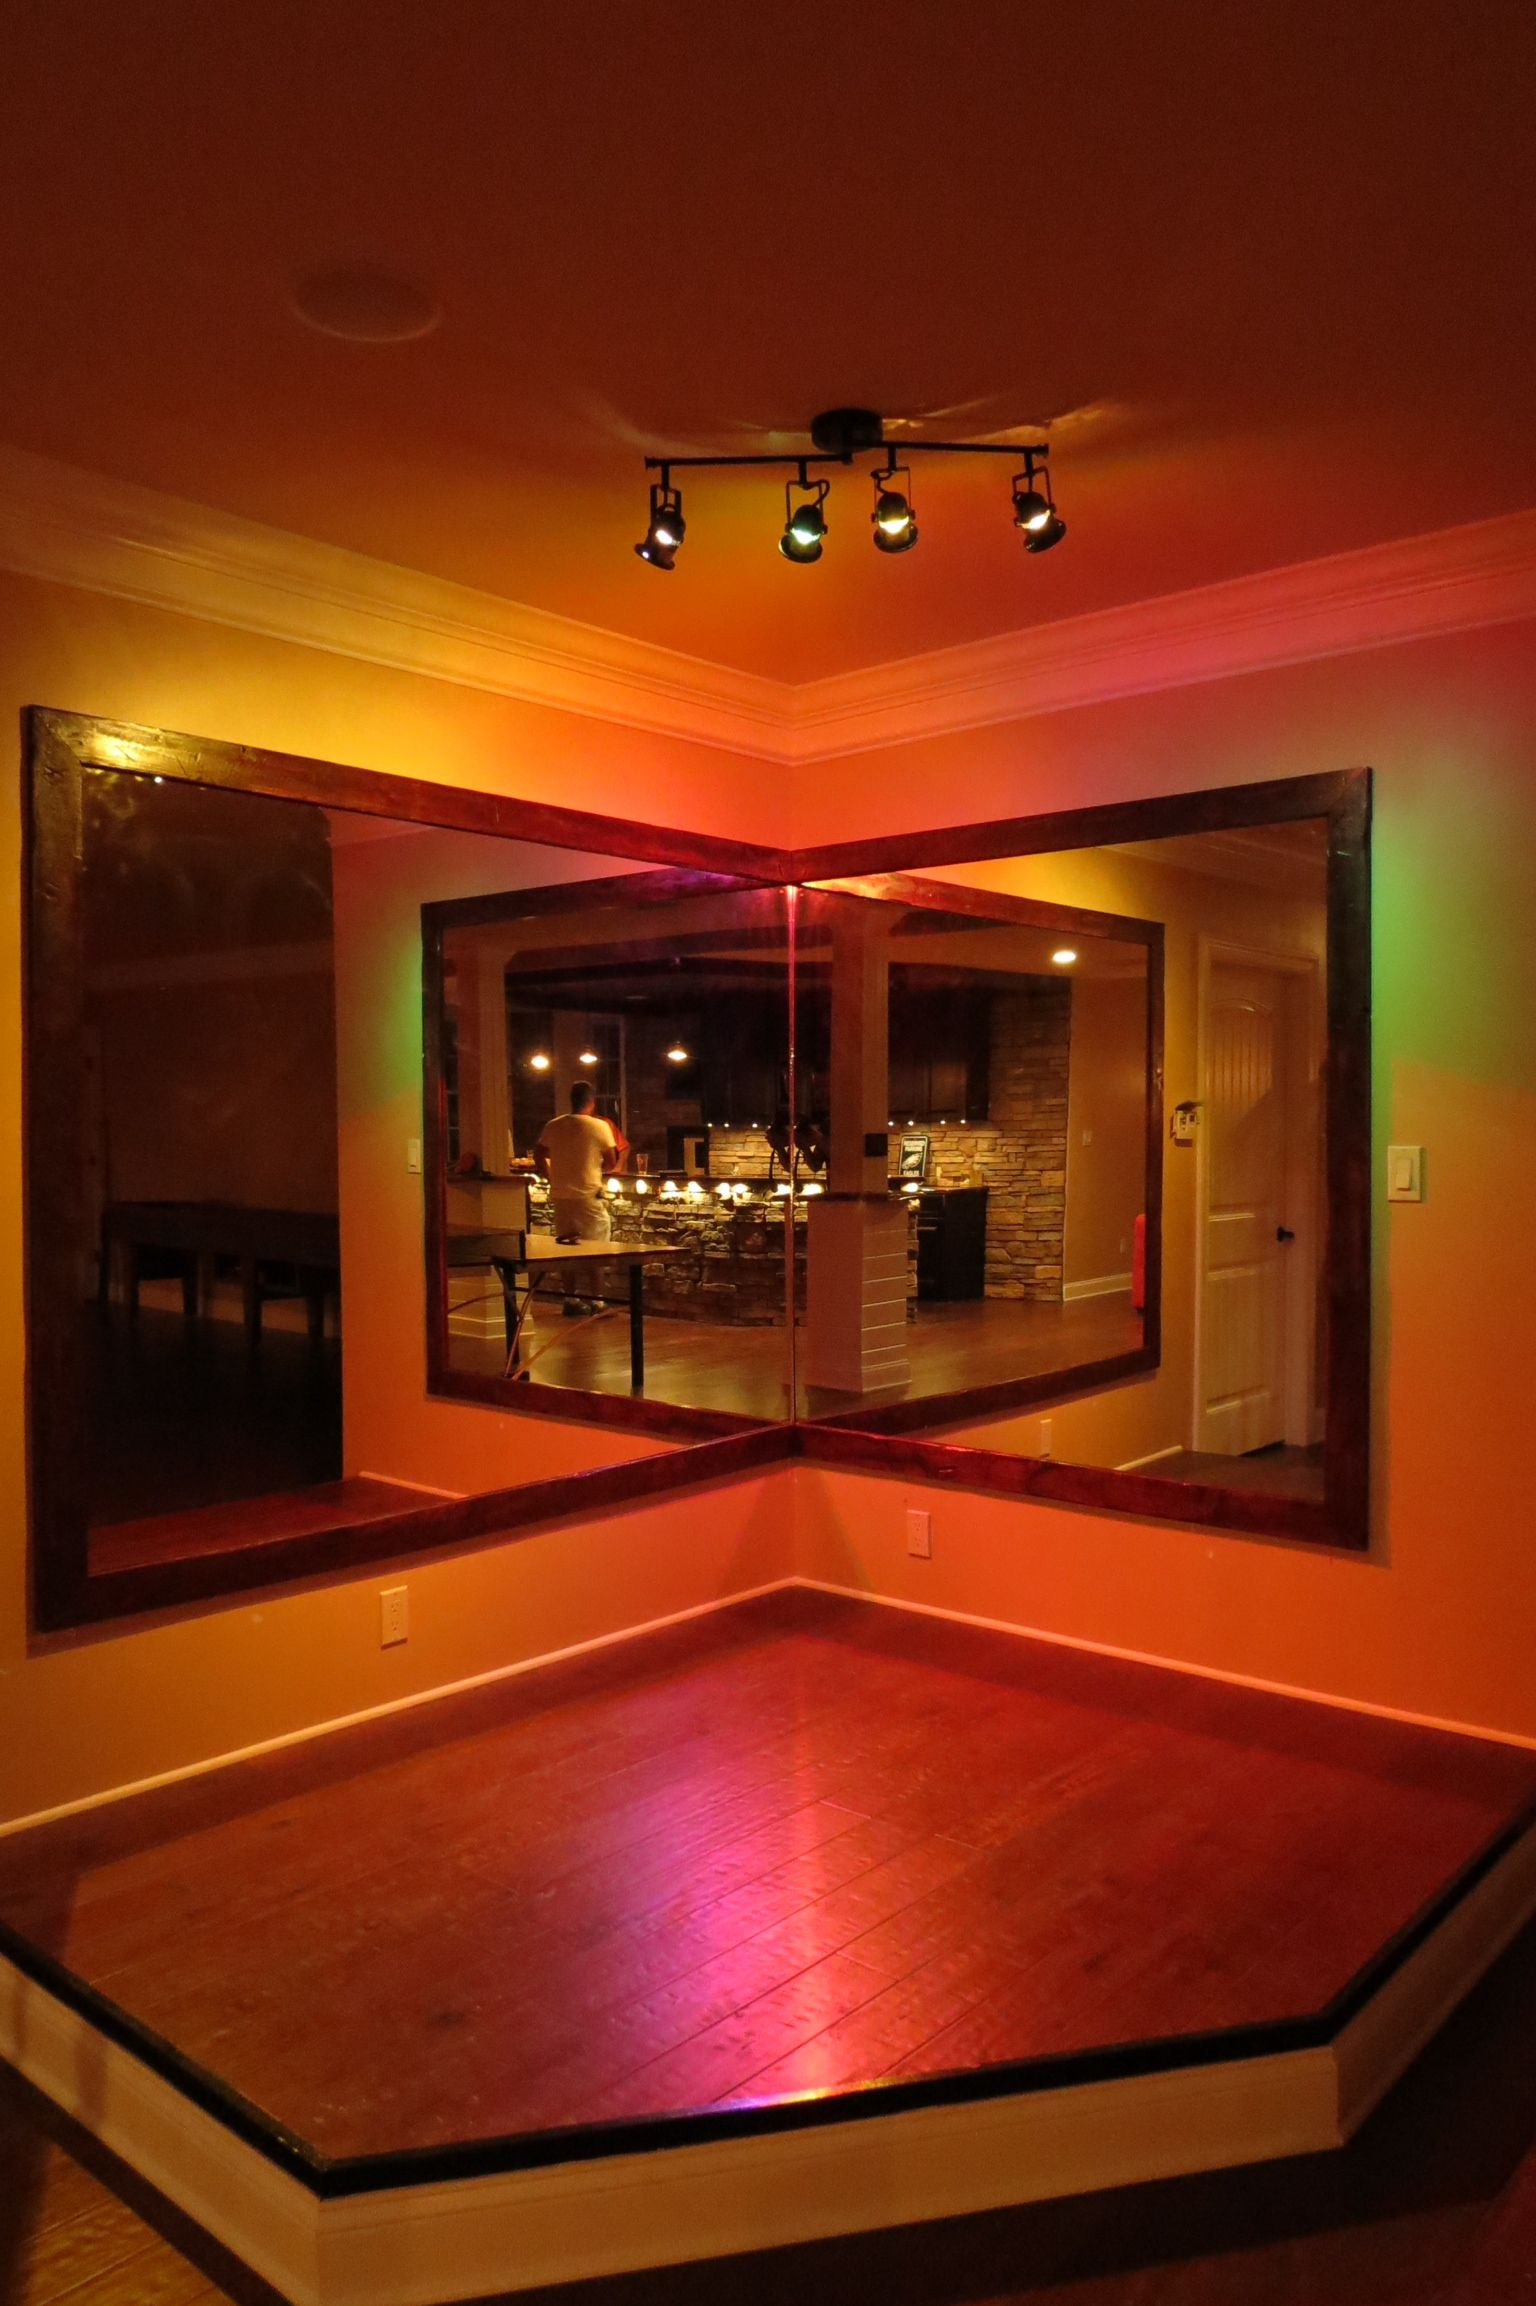 Basement Stage With A Curtain And More Rounded Karaoke